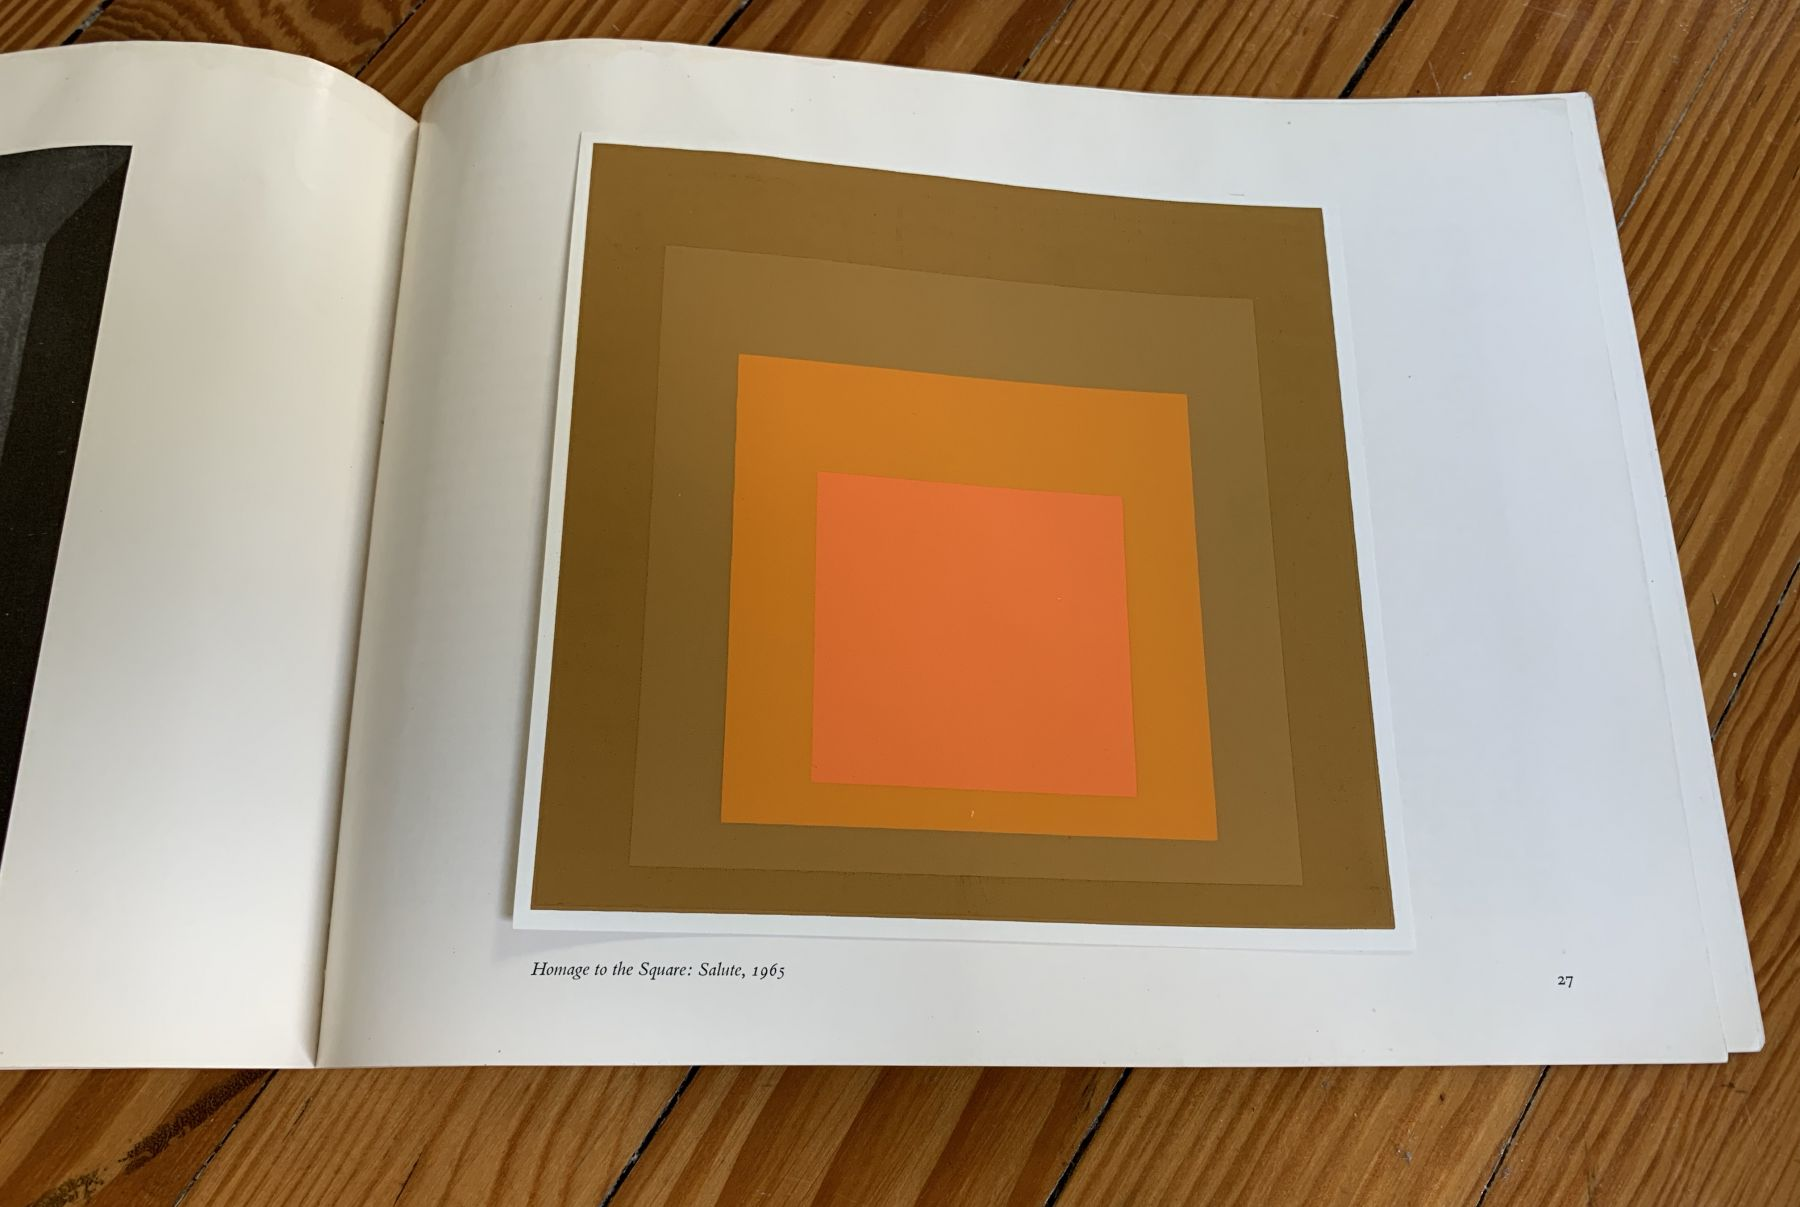 Alternate Projects, Jopsef Albers: The American Years